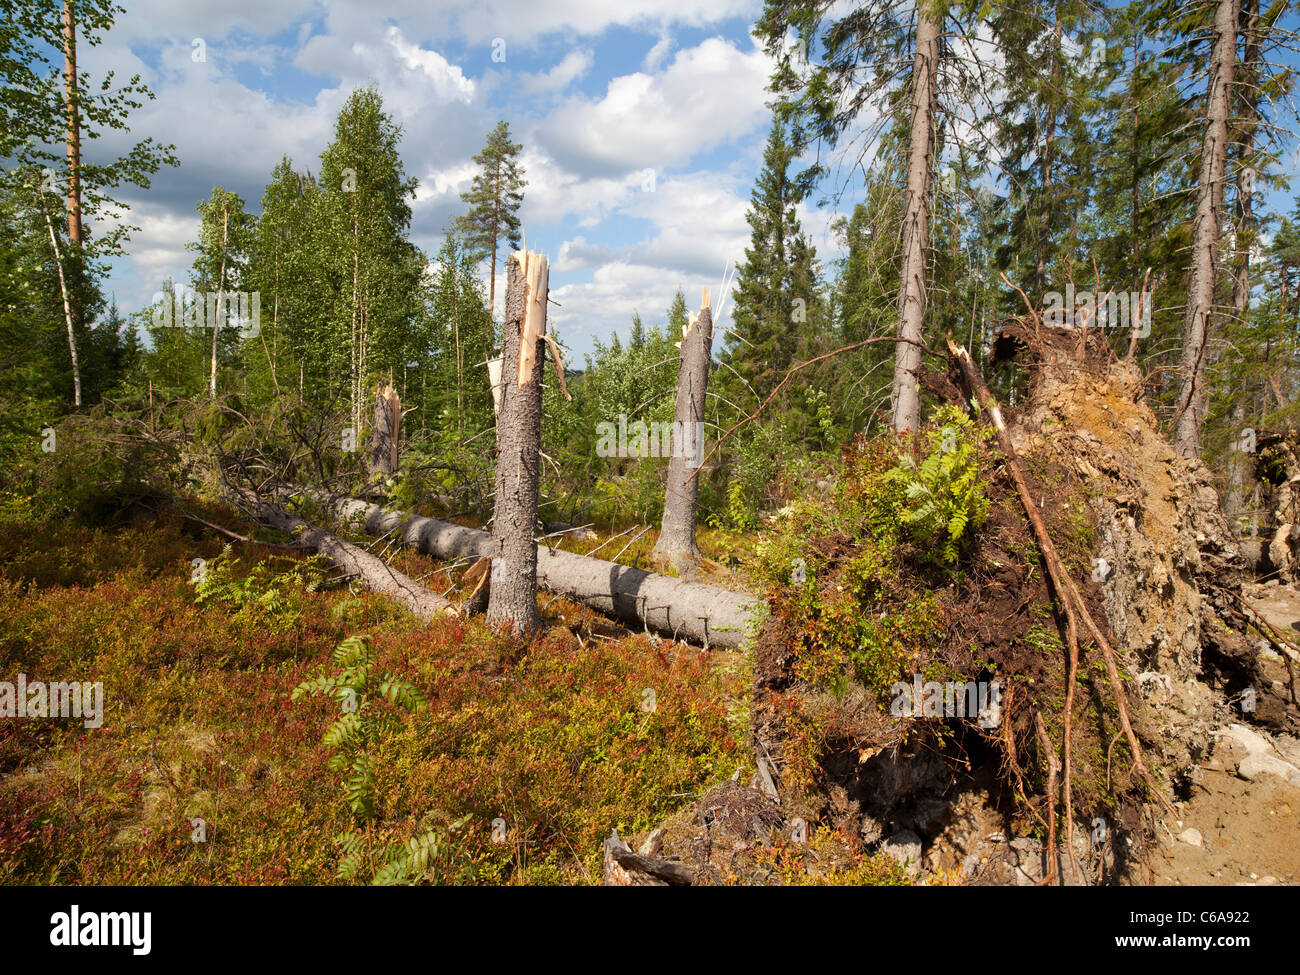 High winds storm damage in the forest . Uprooted and broken spruce trees ( picea abies ) , Finland - Stock Image